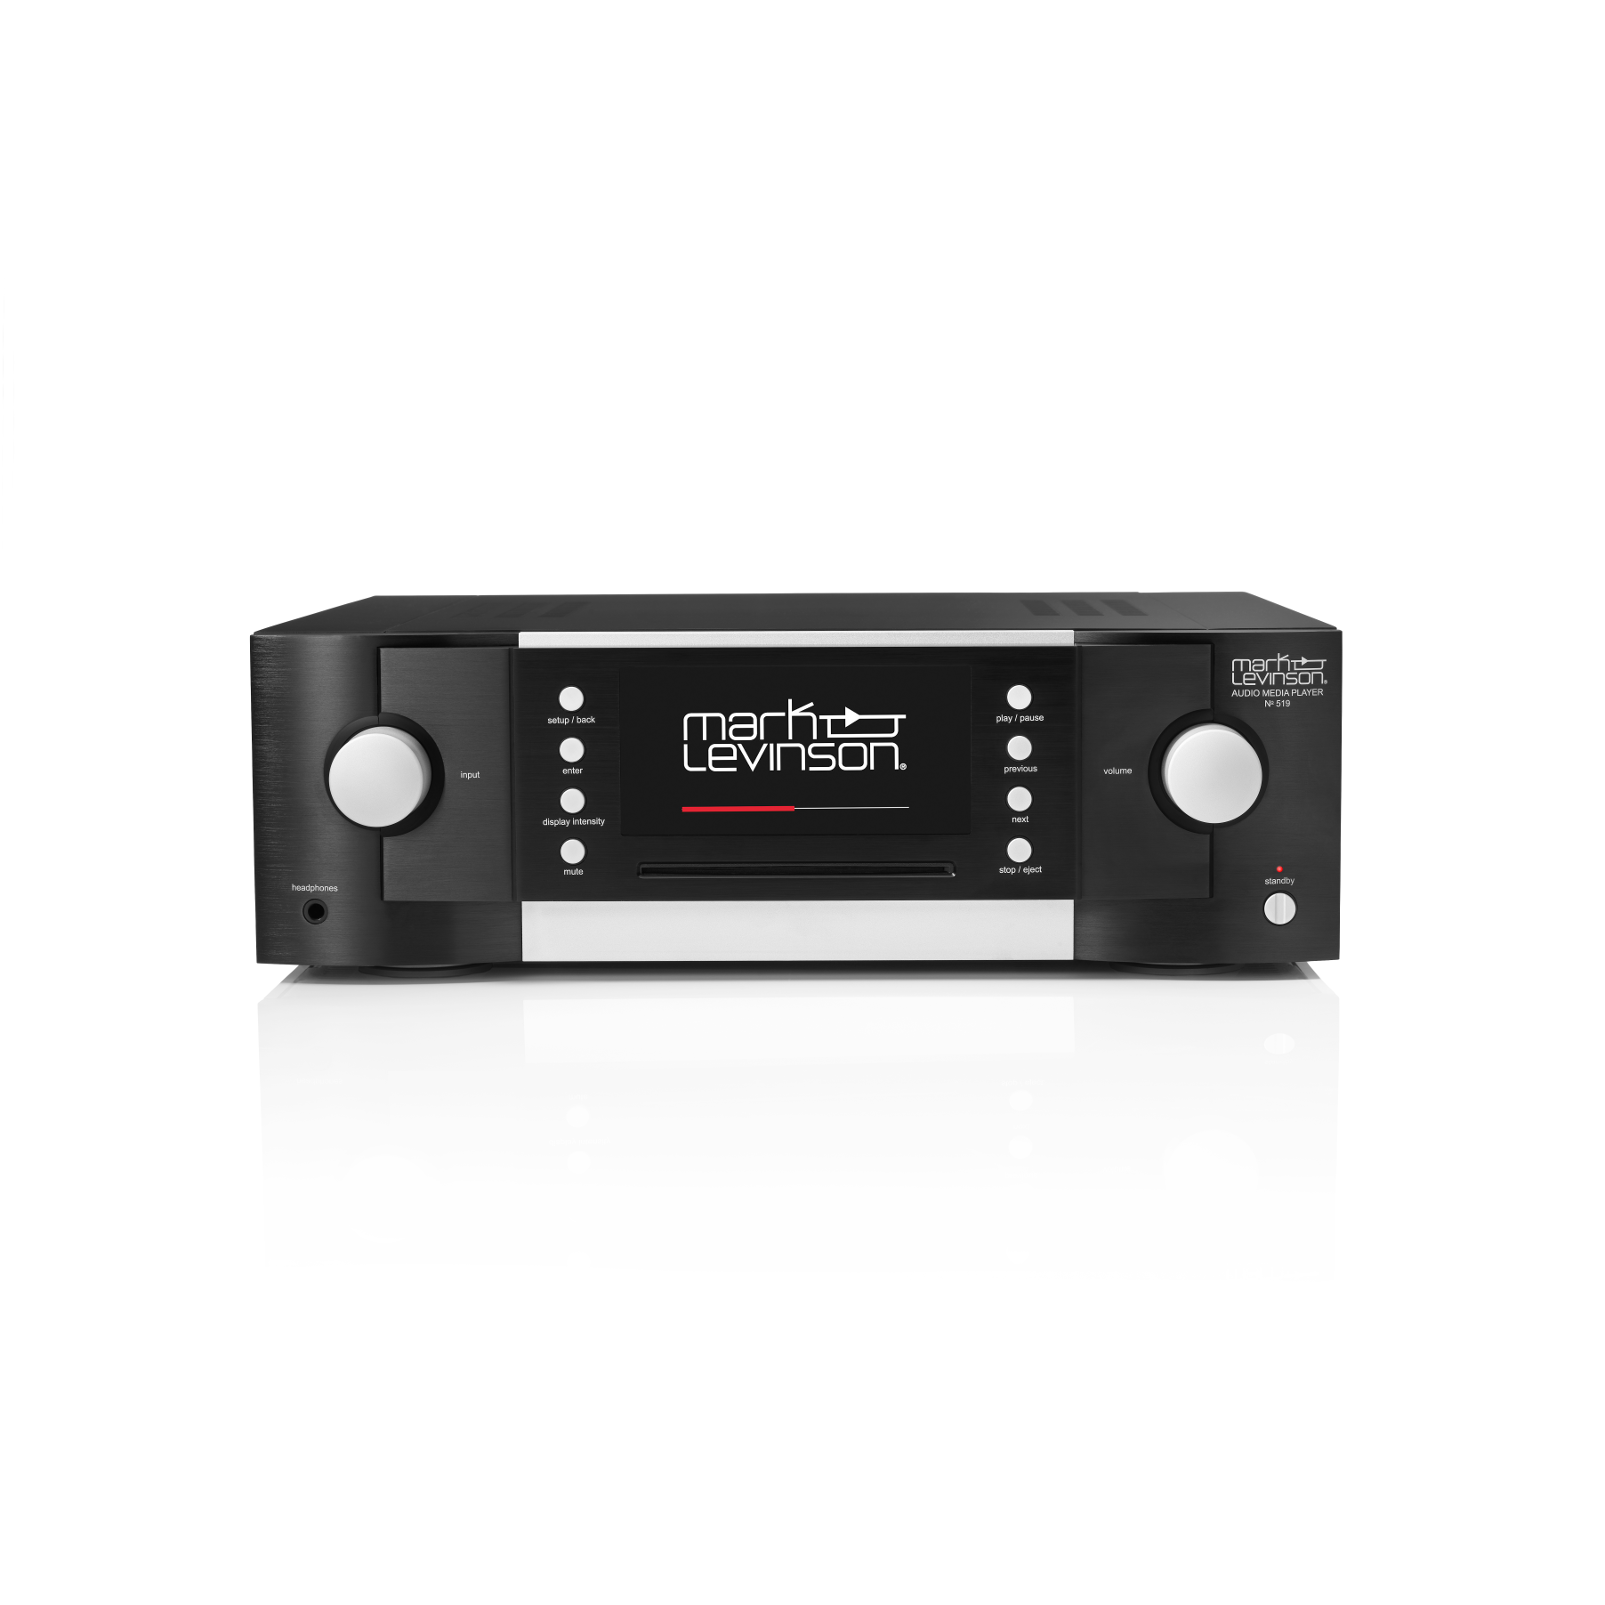 № 519 - Black - Audio Player  - Front